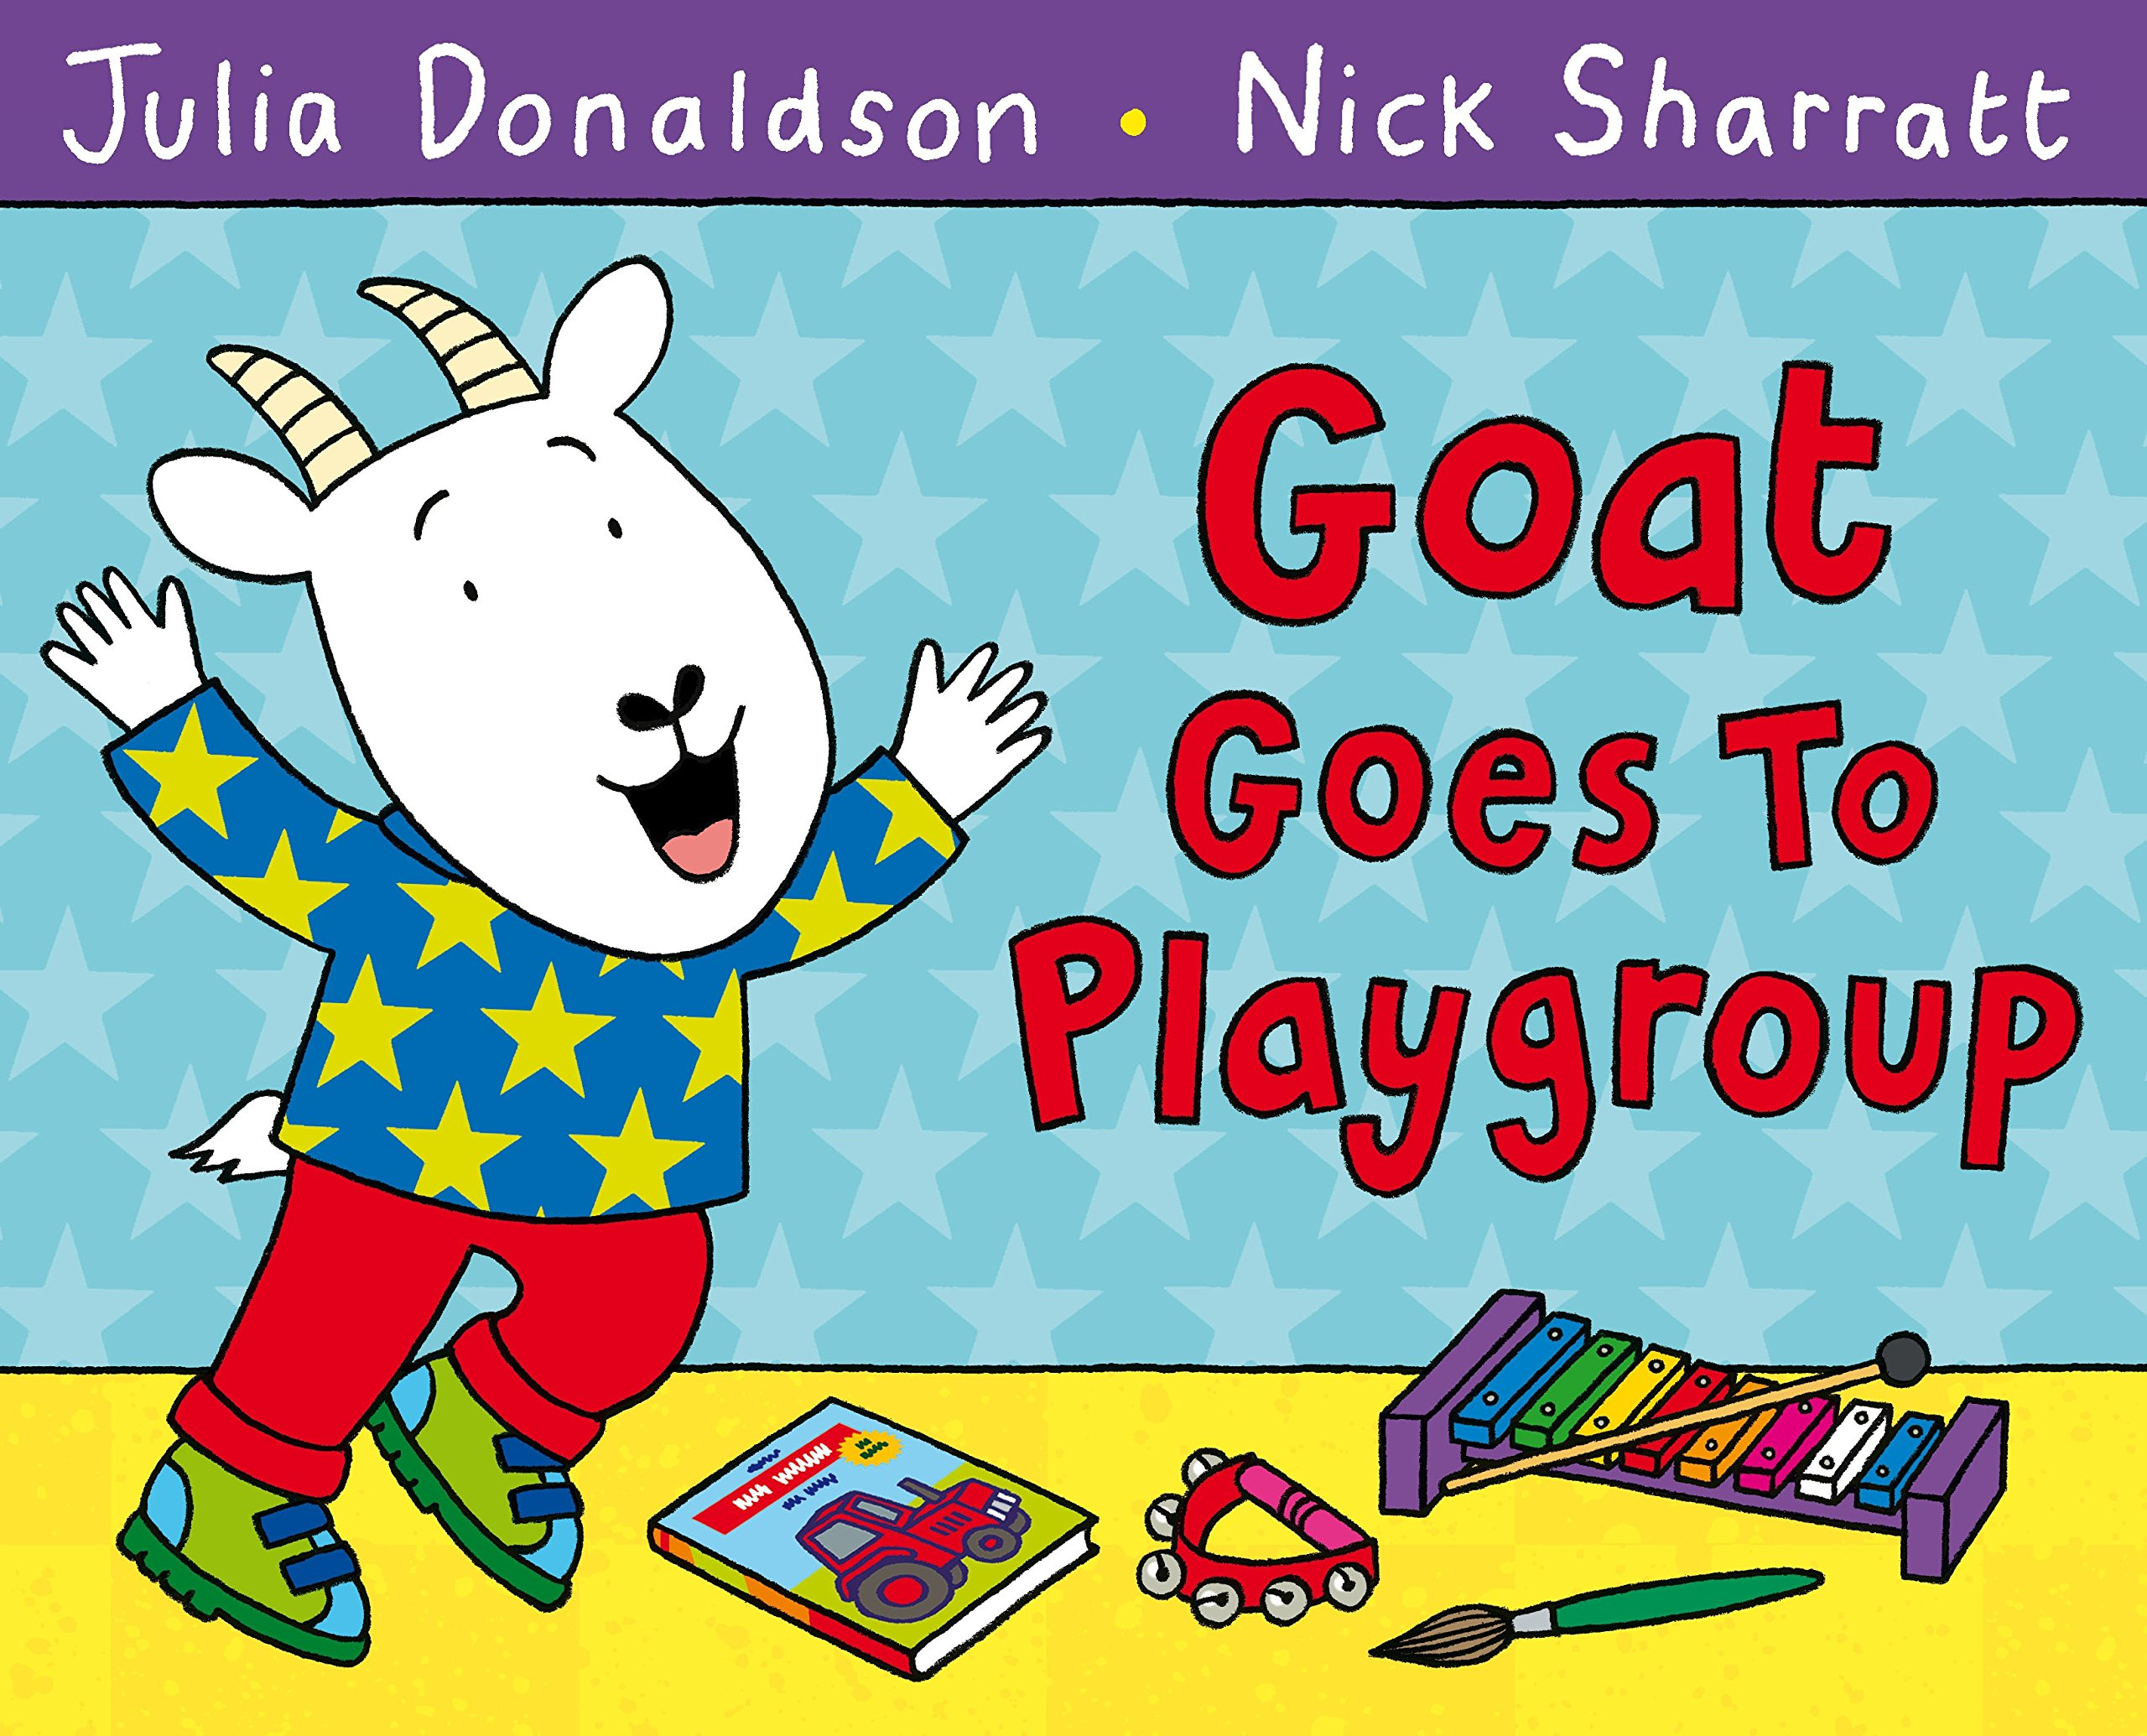 Goat Goes to Playgroup: Amazon.co.uk: Donaldson, Julia, Sharratt, Nick:  9781447210948: Books